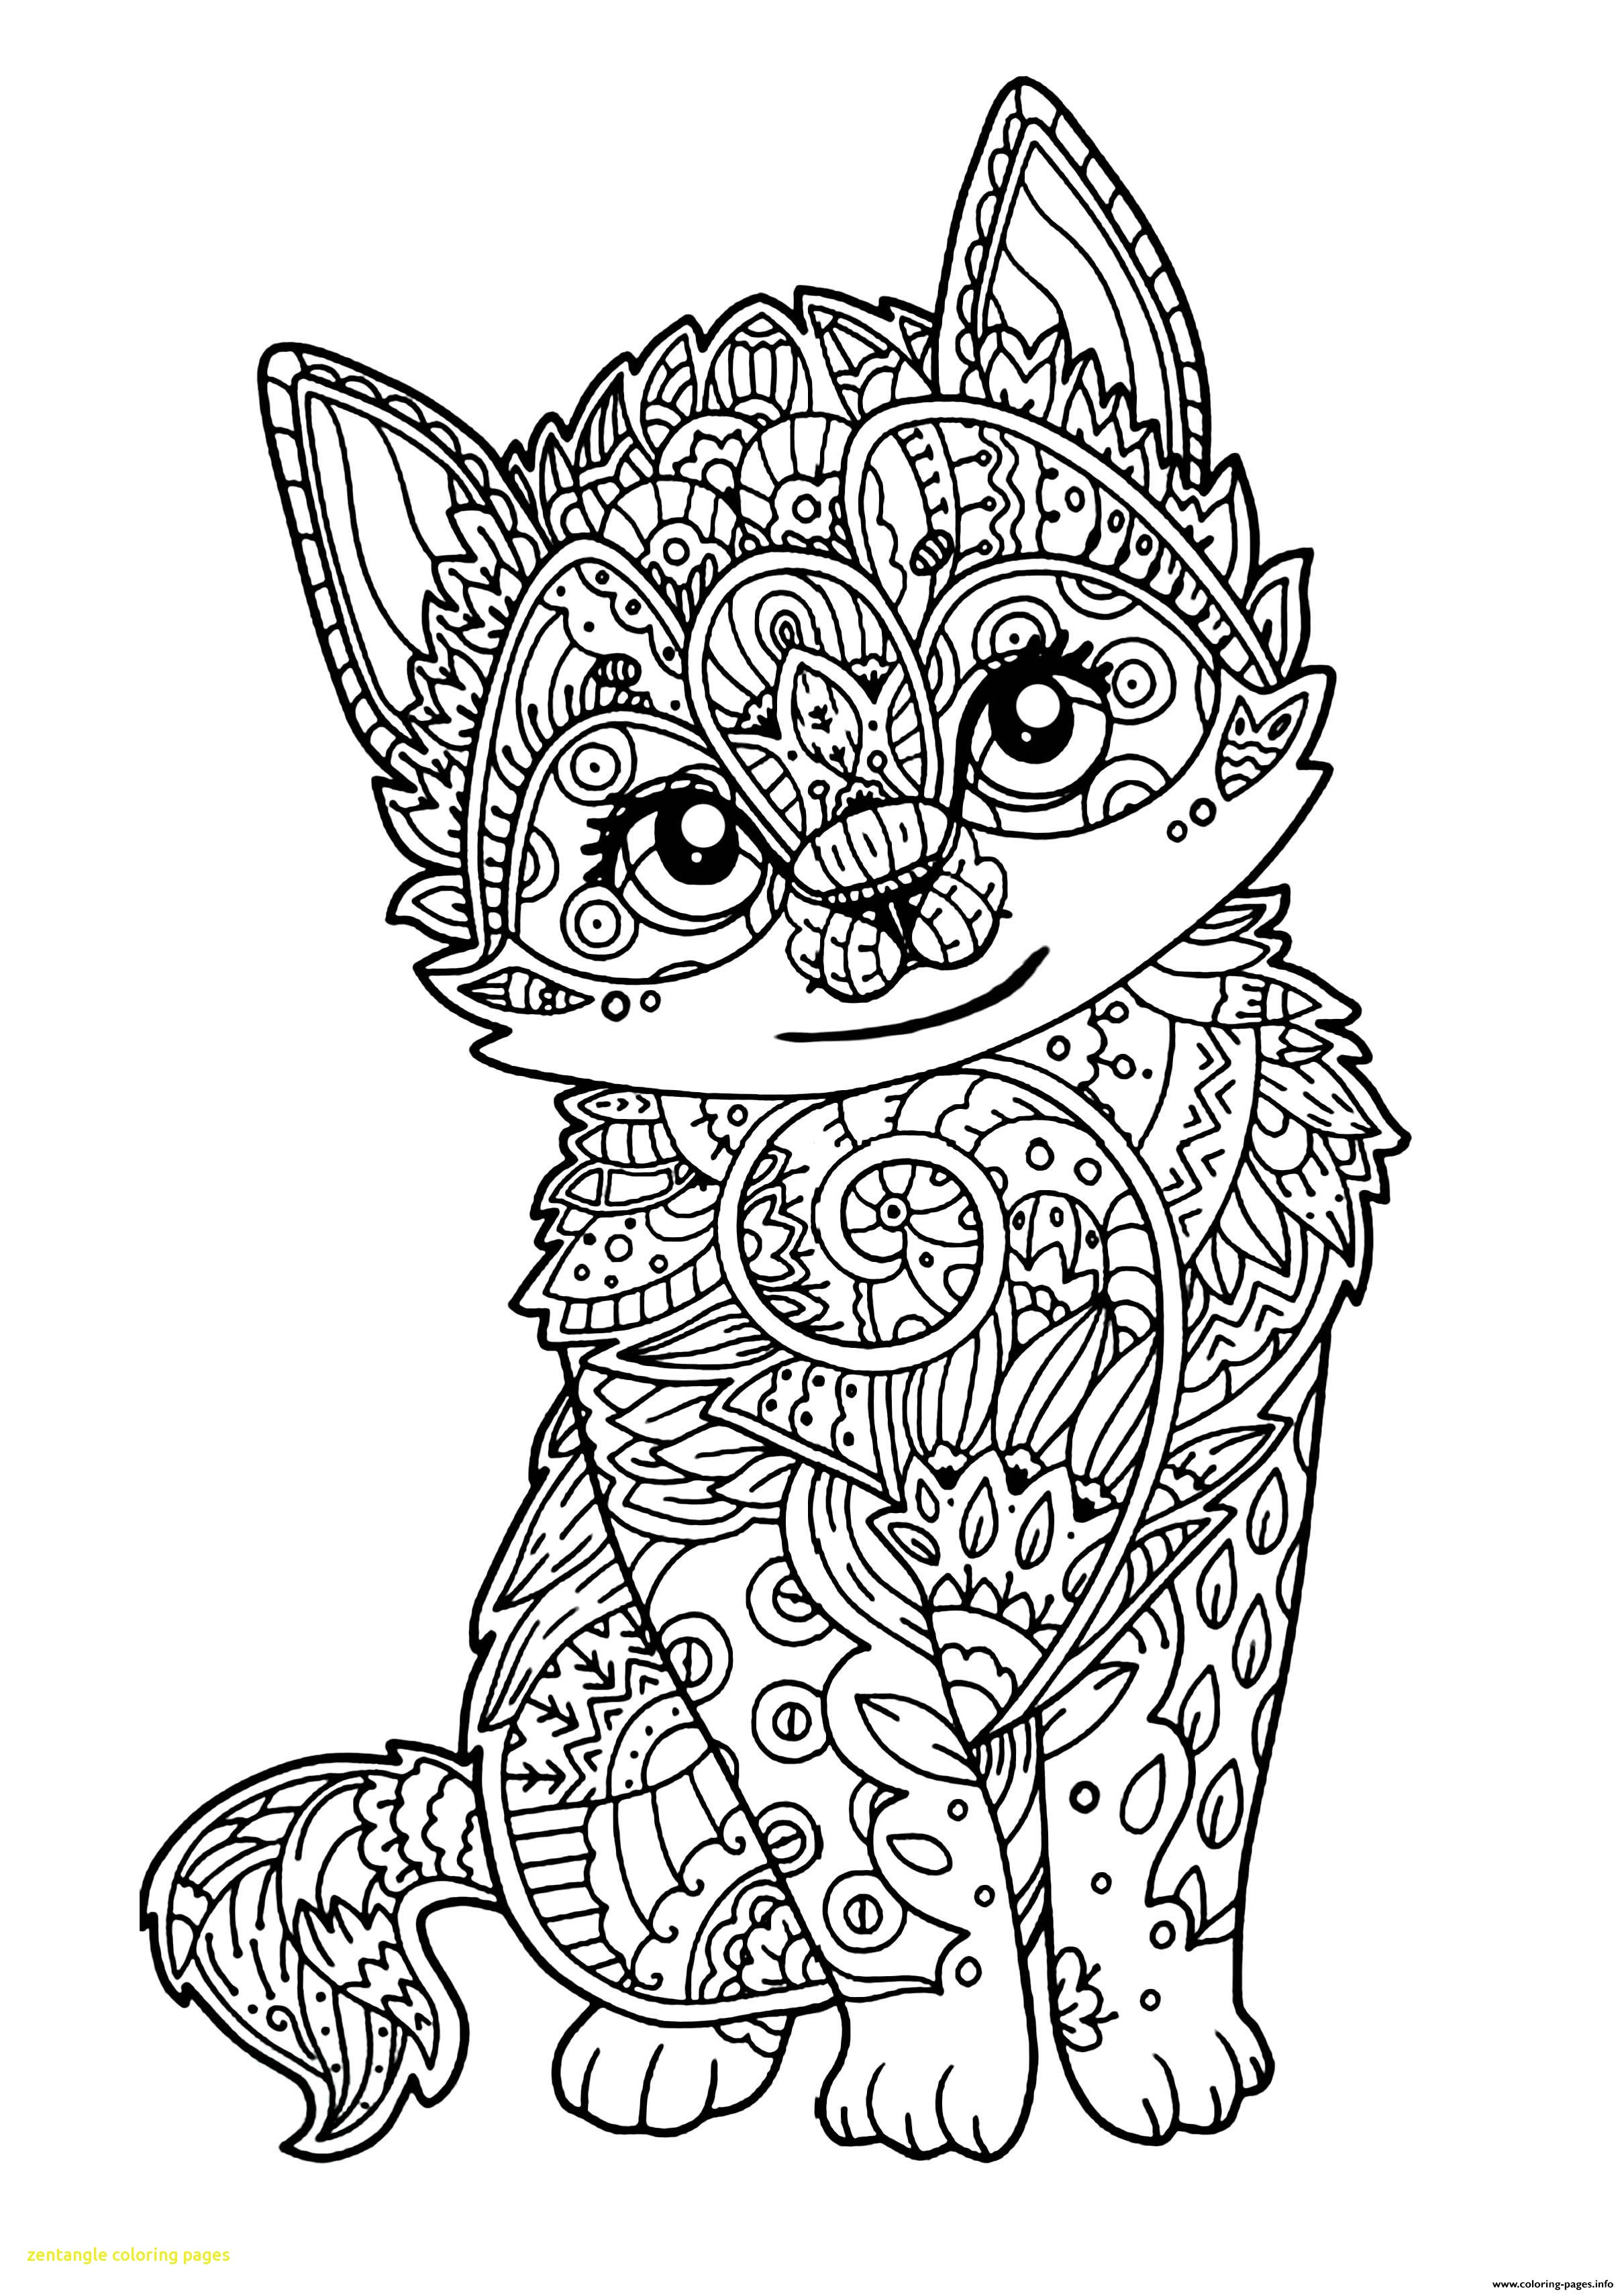 2420x3416 Zentangle Coloring Pages With Cute Cat Adult Zentangle Coloring